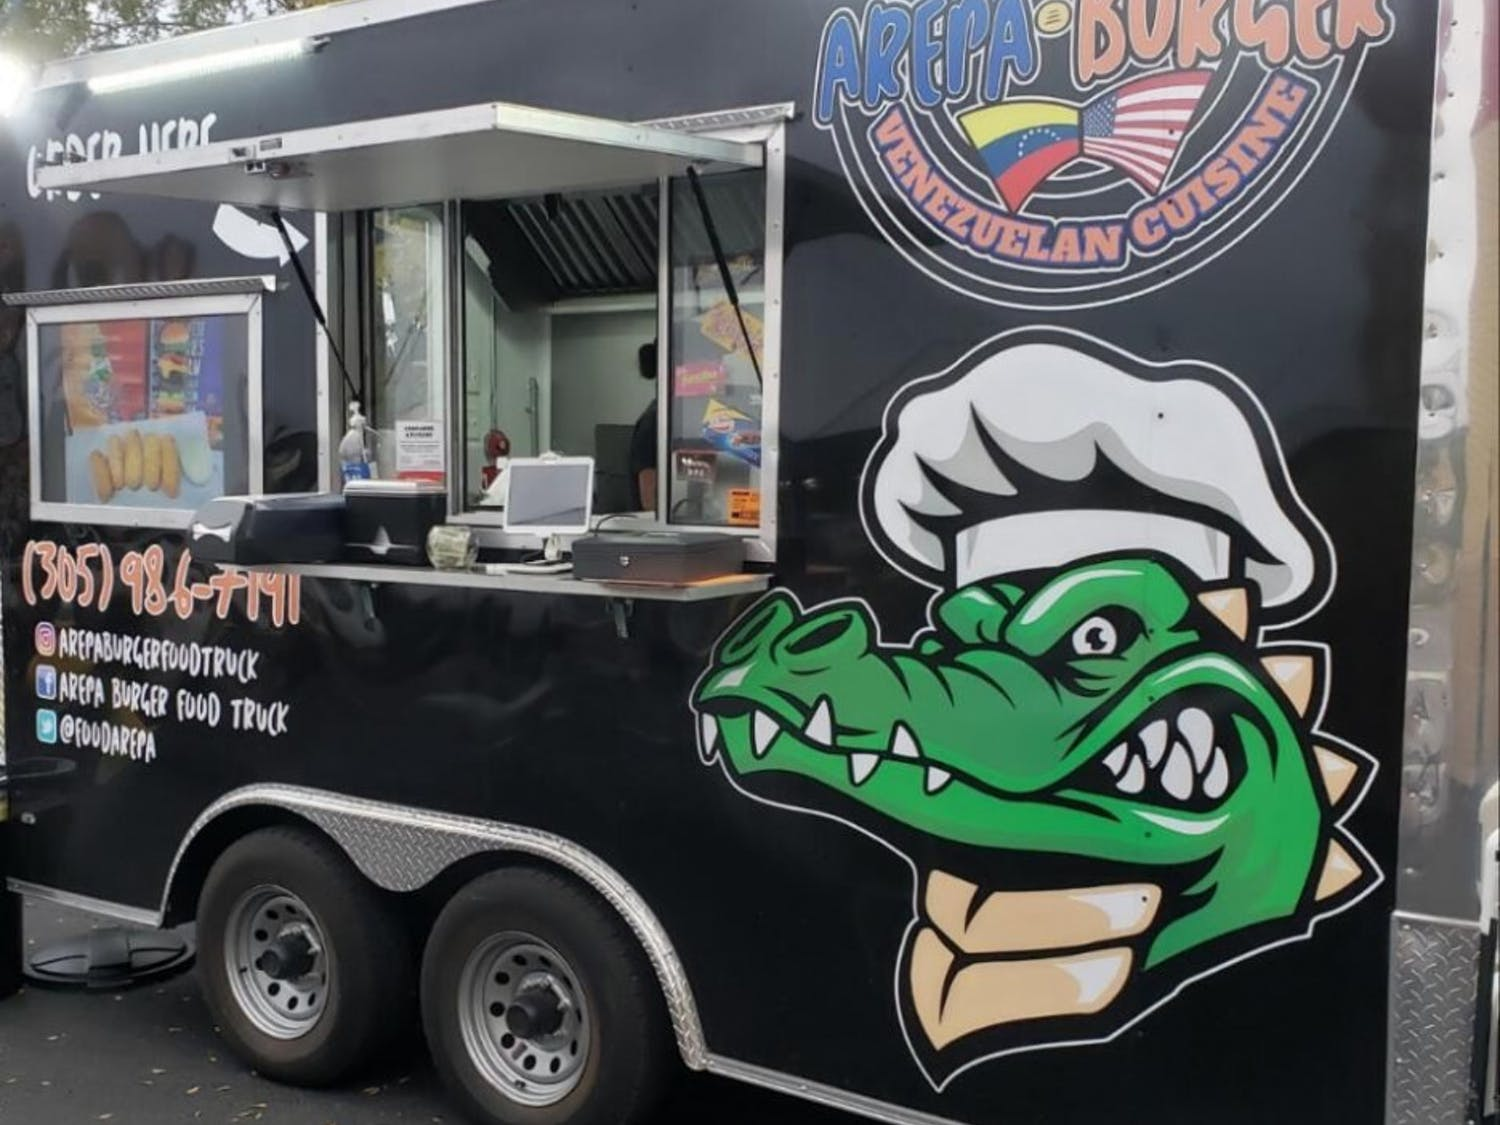 A year after fleeing Venezuela, 59-year-old Victor Suarez opened Arepa Burger Food Truck because all he knew was food in his home country.